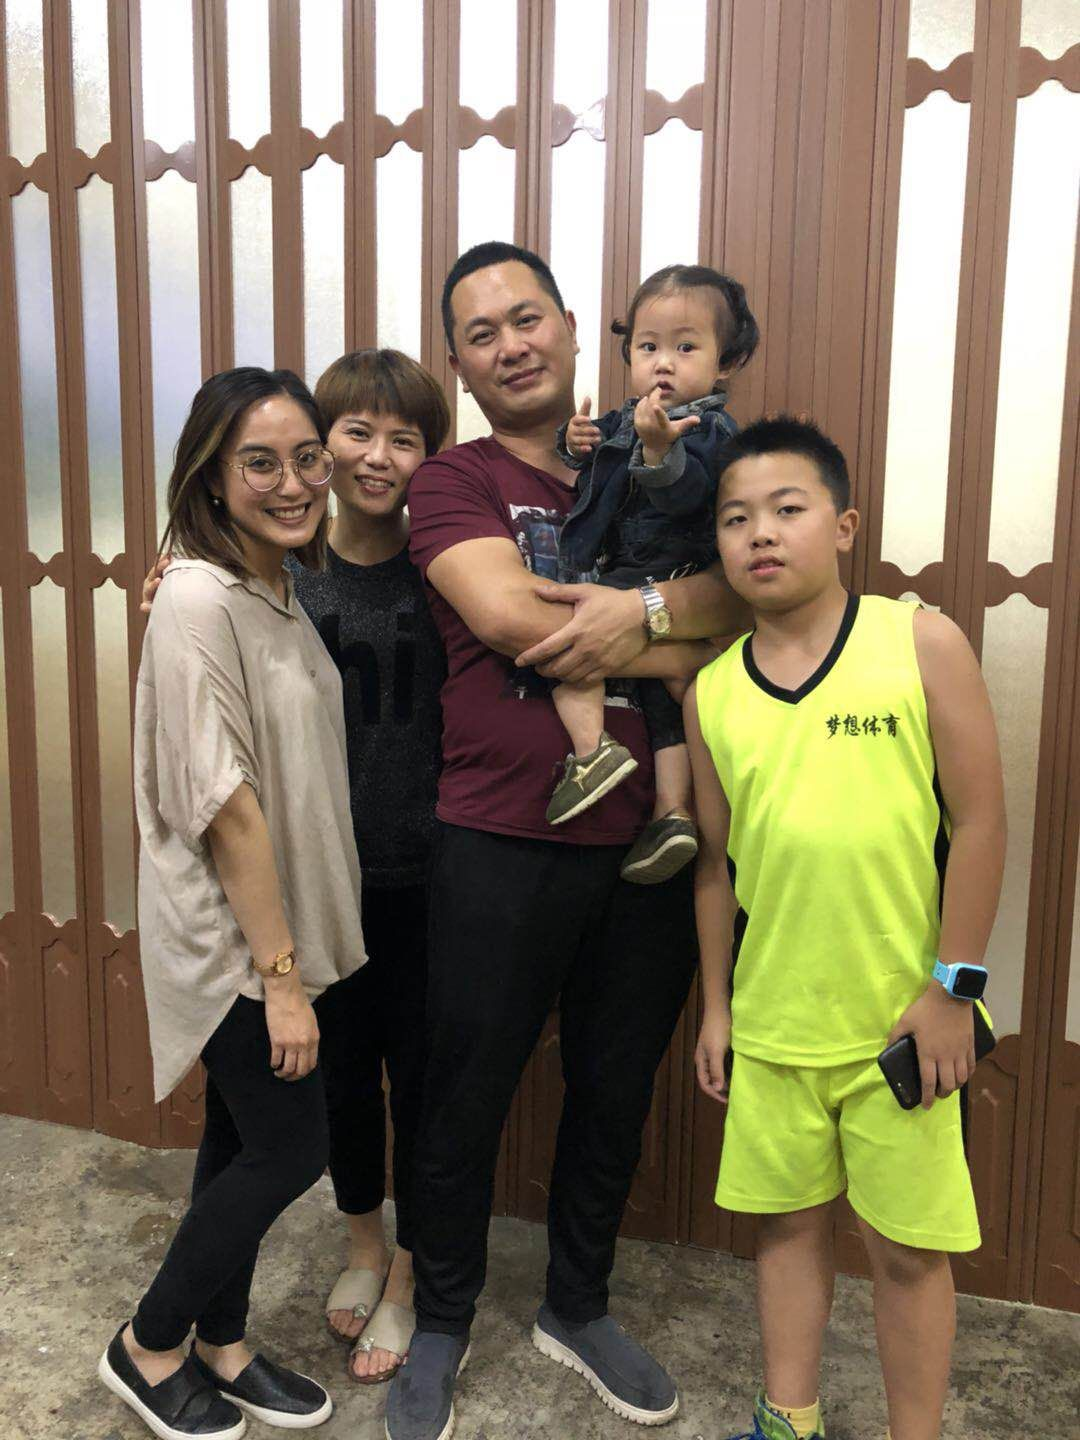 Shannen and Yoyo's family